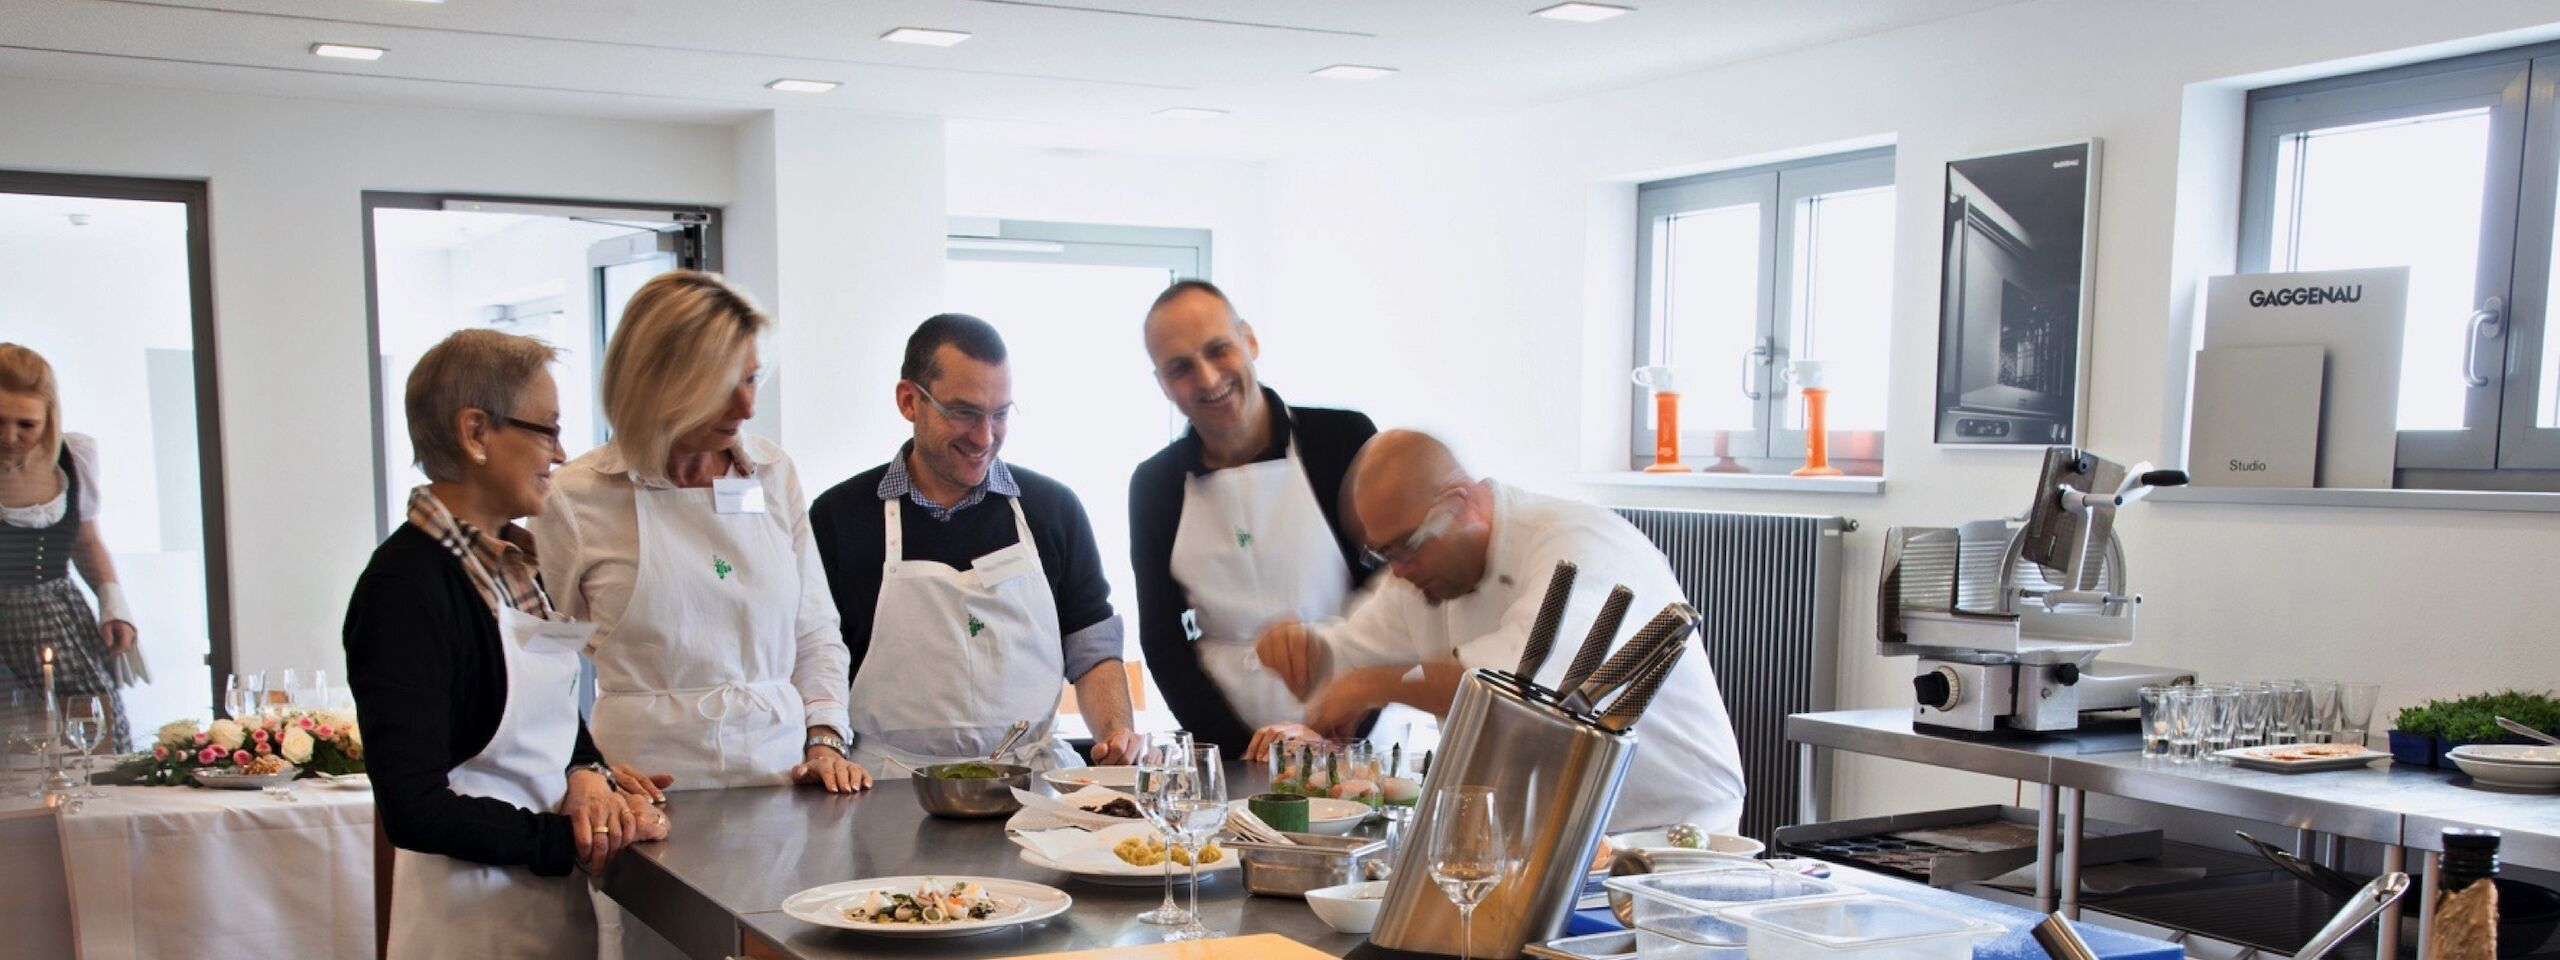 Traube Tonbach Cooking School 3